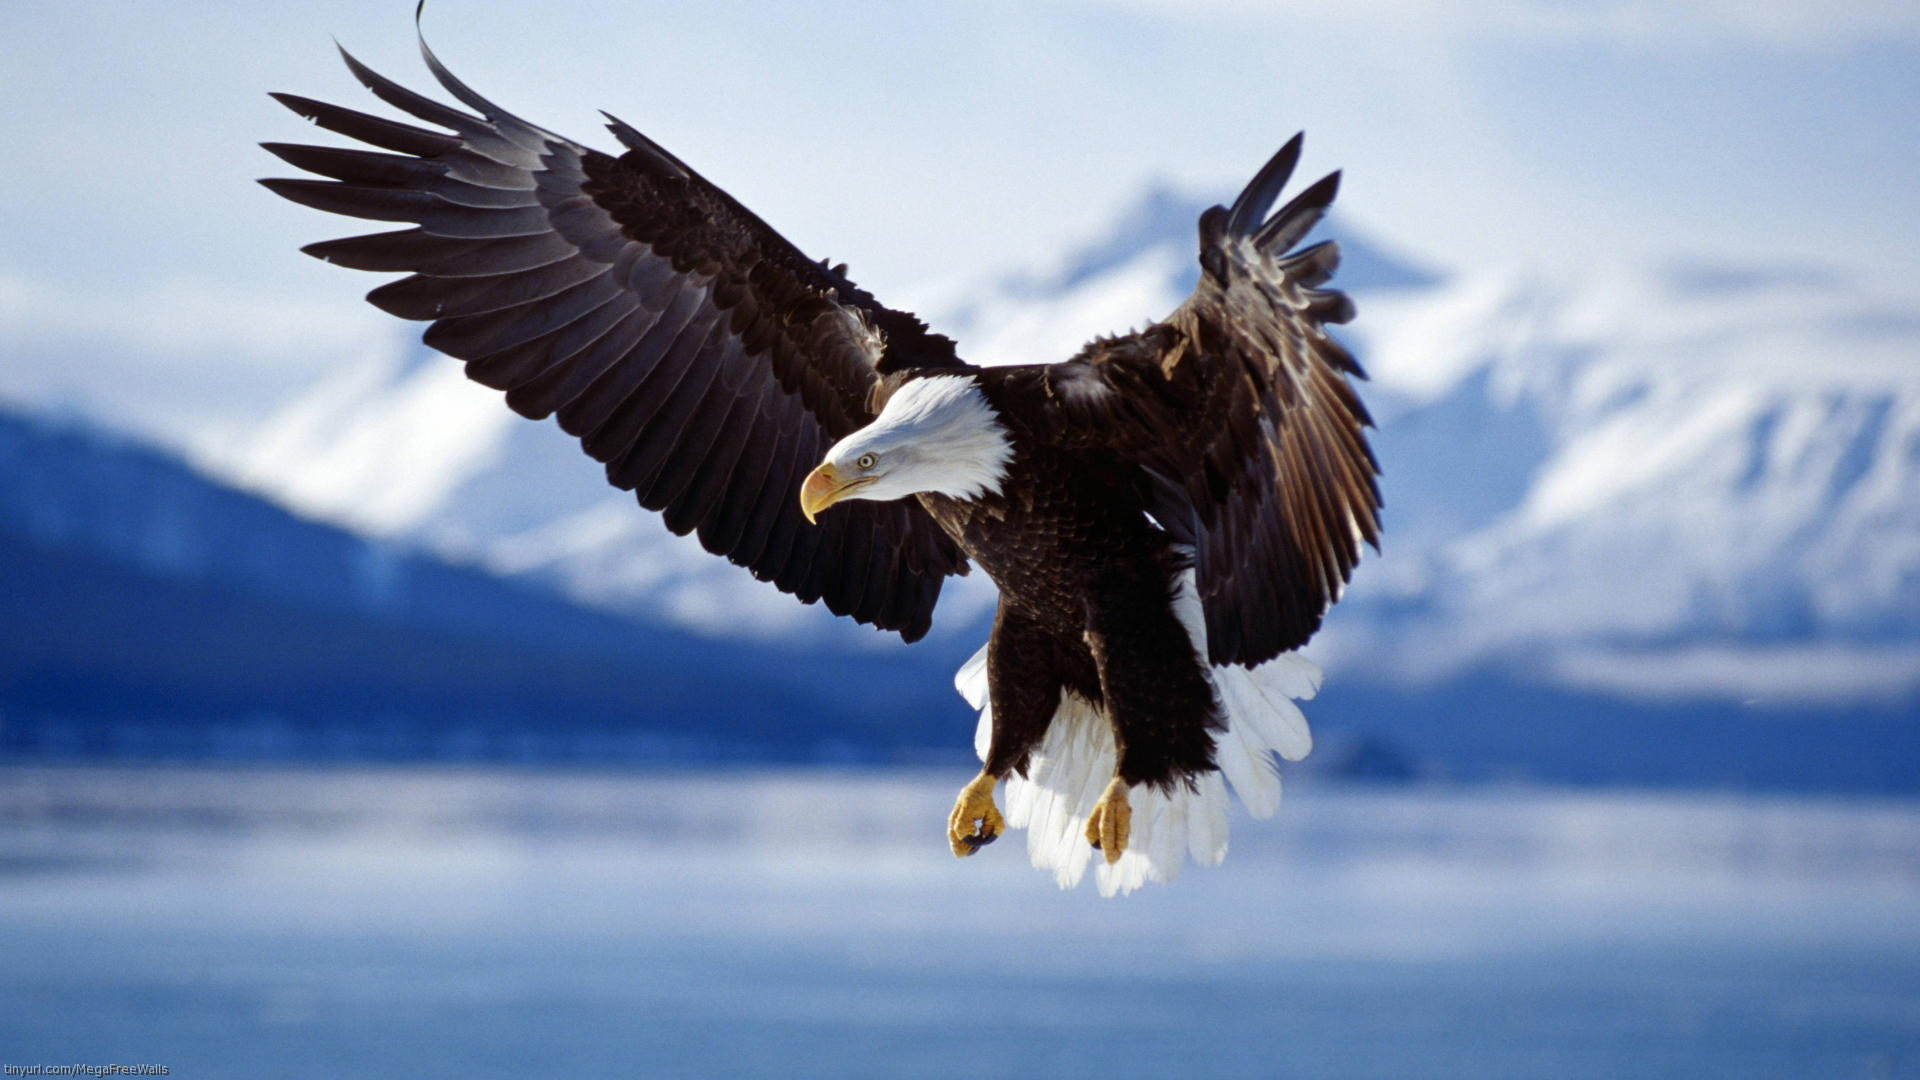 High resolution American Bald Eagle full hd 1920x1080 wallpaper ID:68601 for desktop